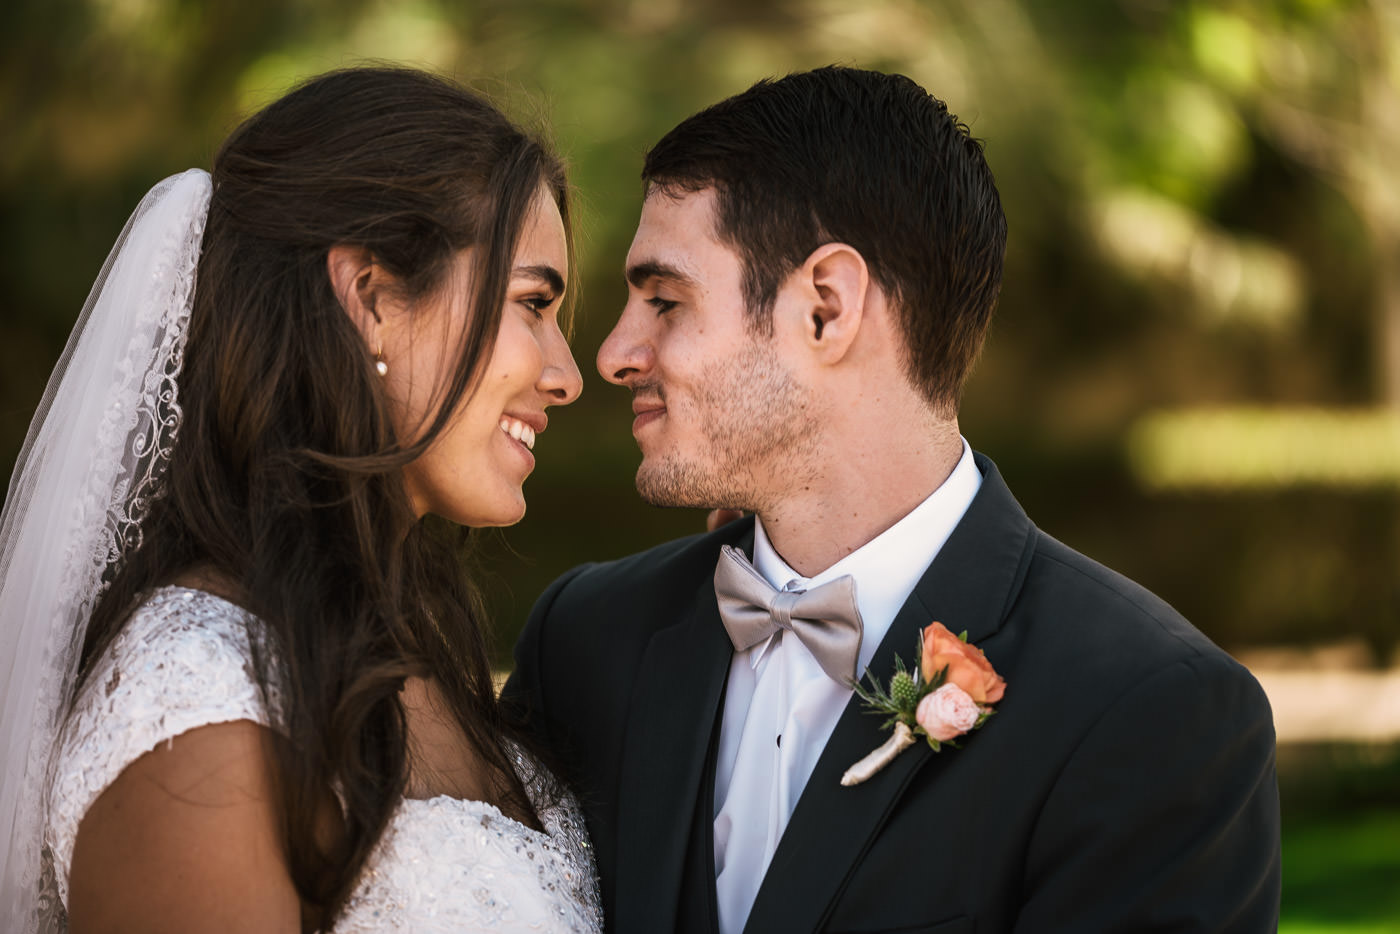 Wedding photographers near San Diego California.